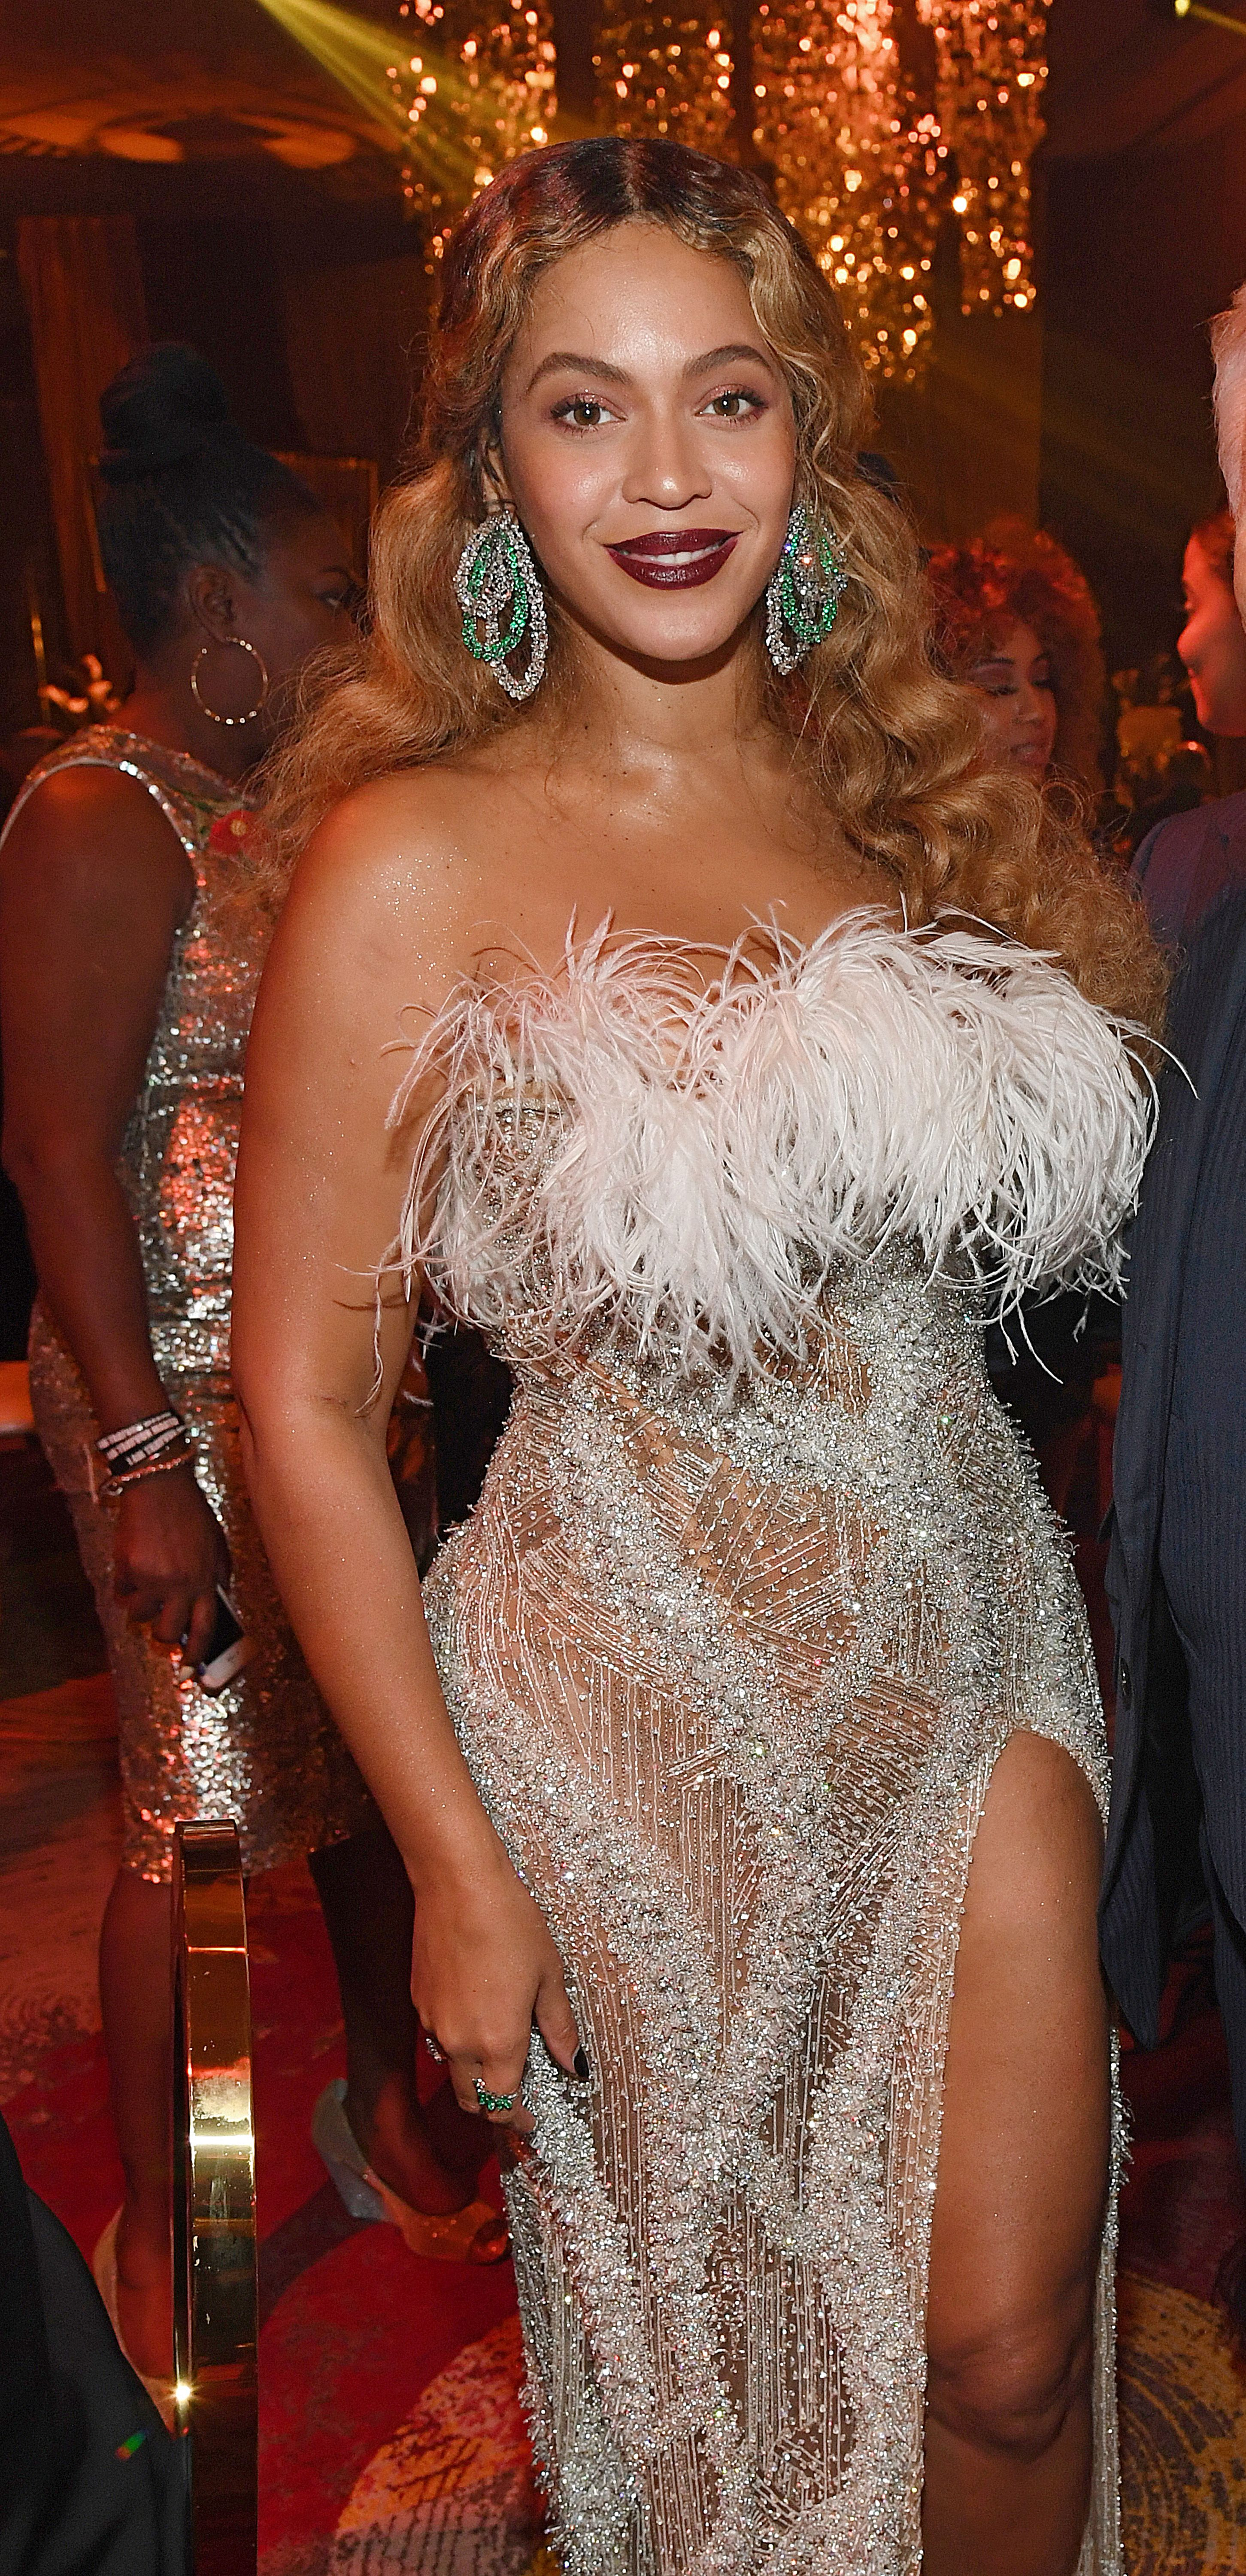 Beryonce at an event